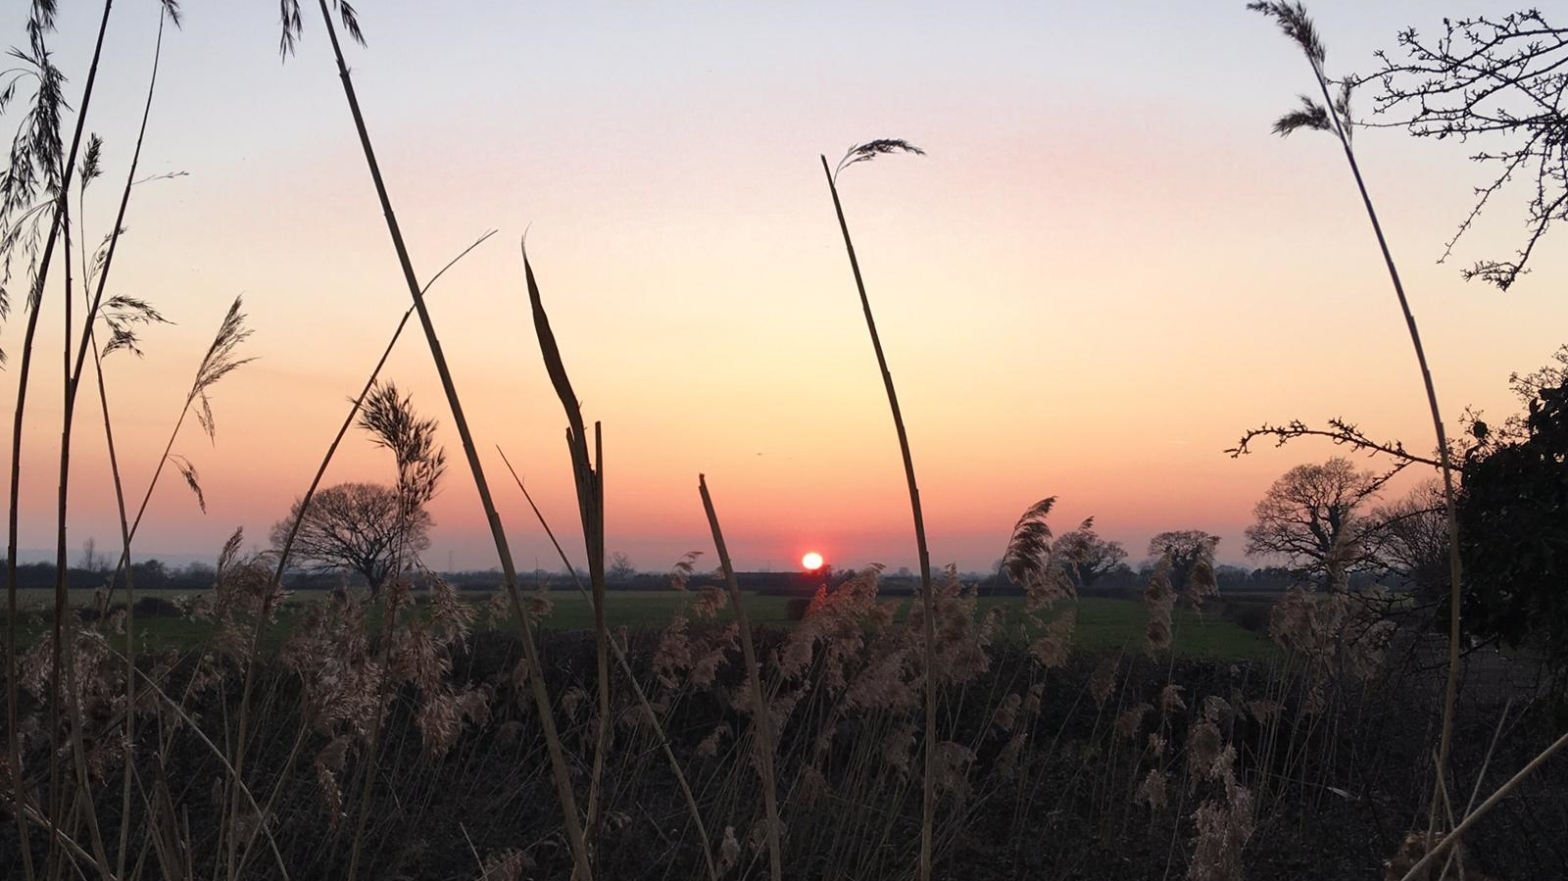 Image is of a sunset through summer grasses